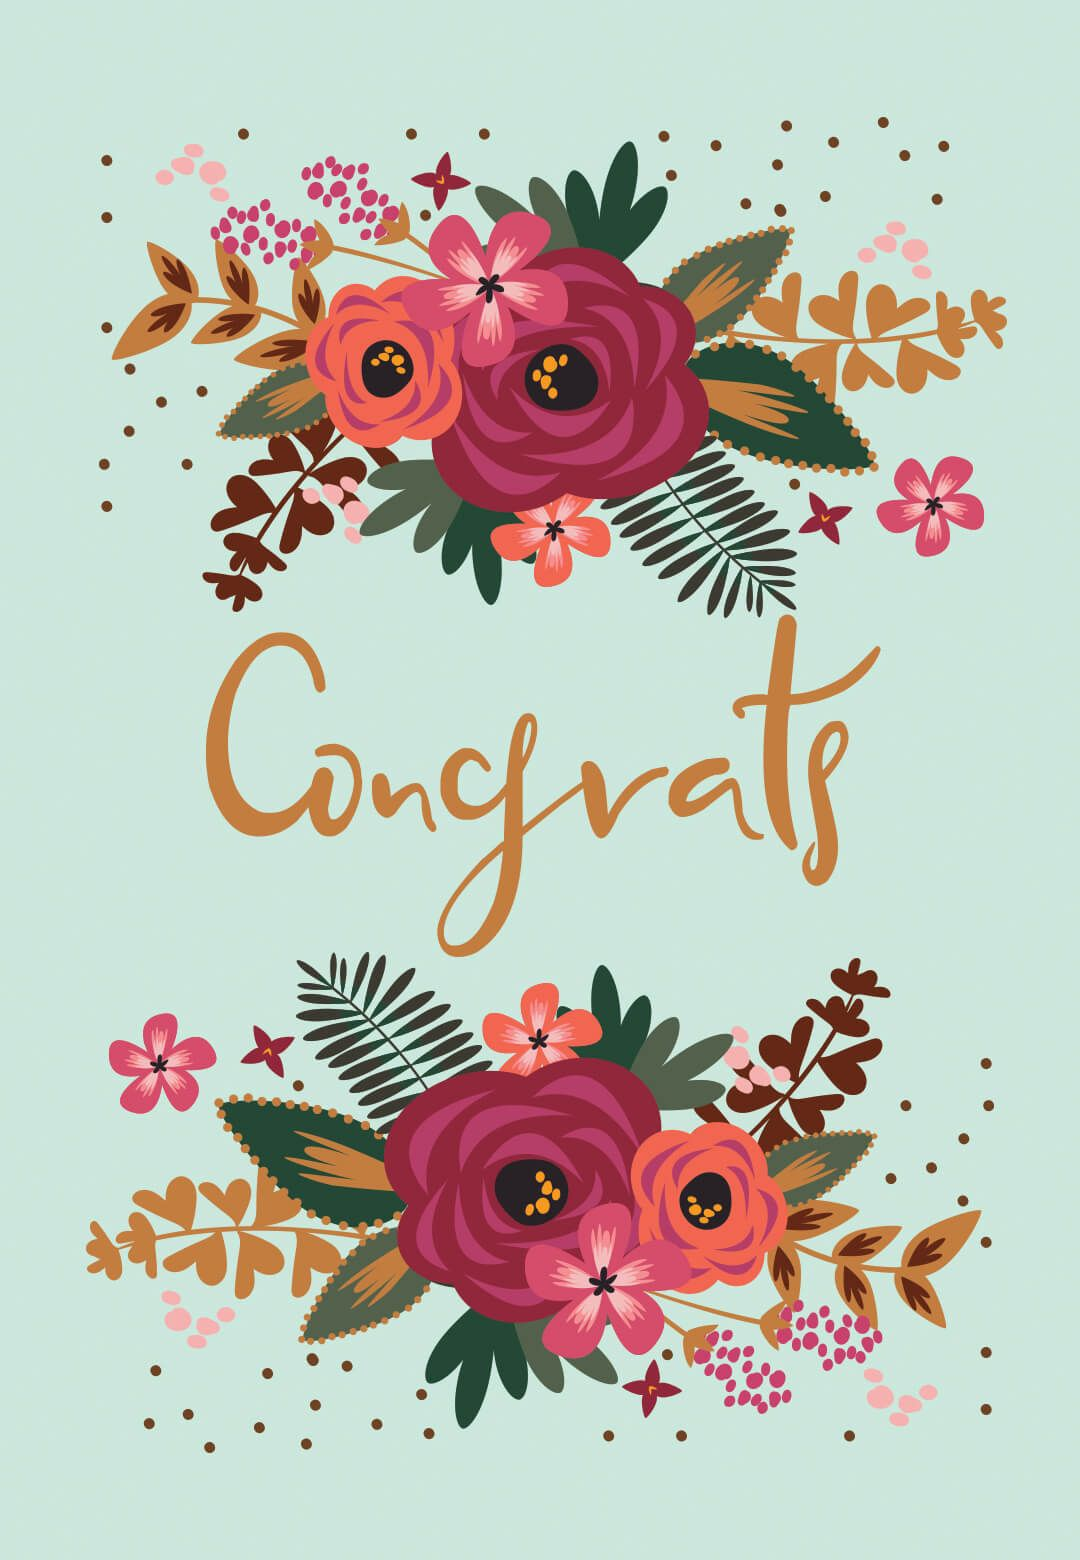 Floral Congrats Free Printable Wedding Congratulations Card Greetings Island Wedding Congratulations Card Congratulations Card Baby Congratulations Card